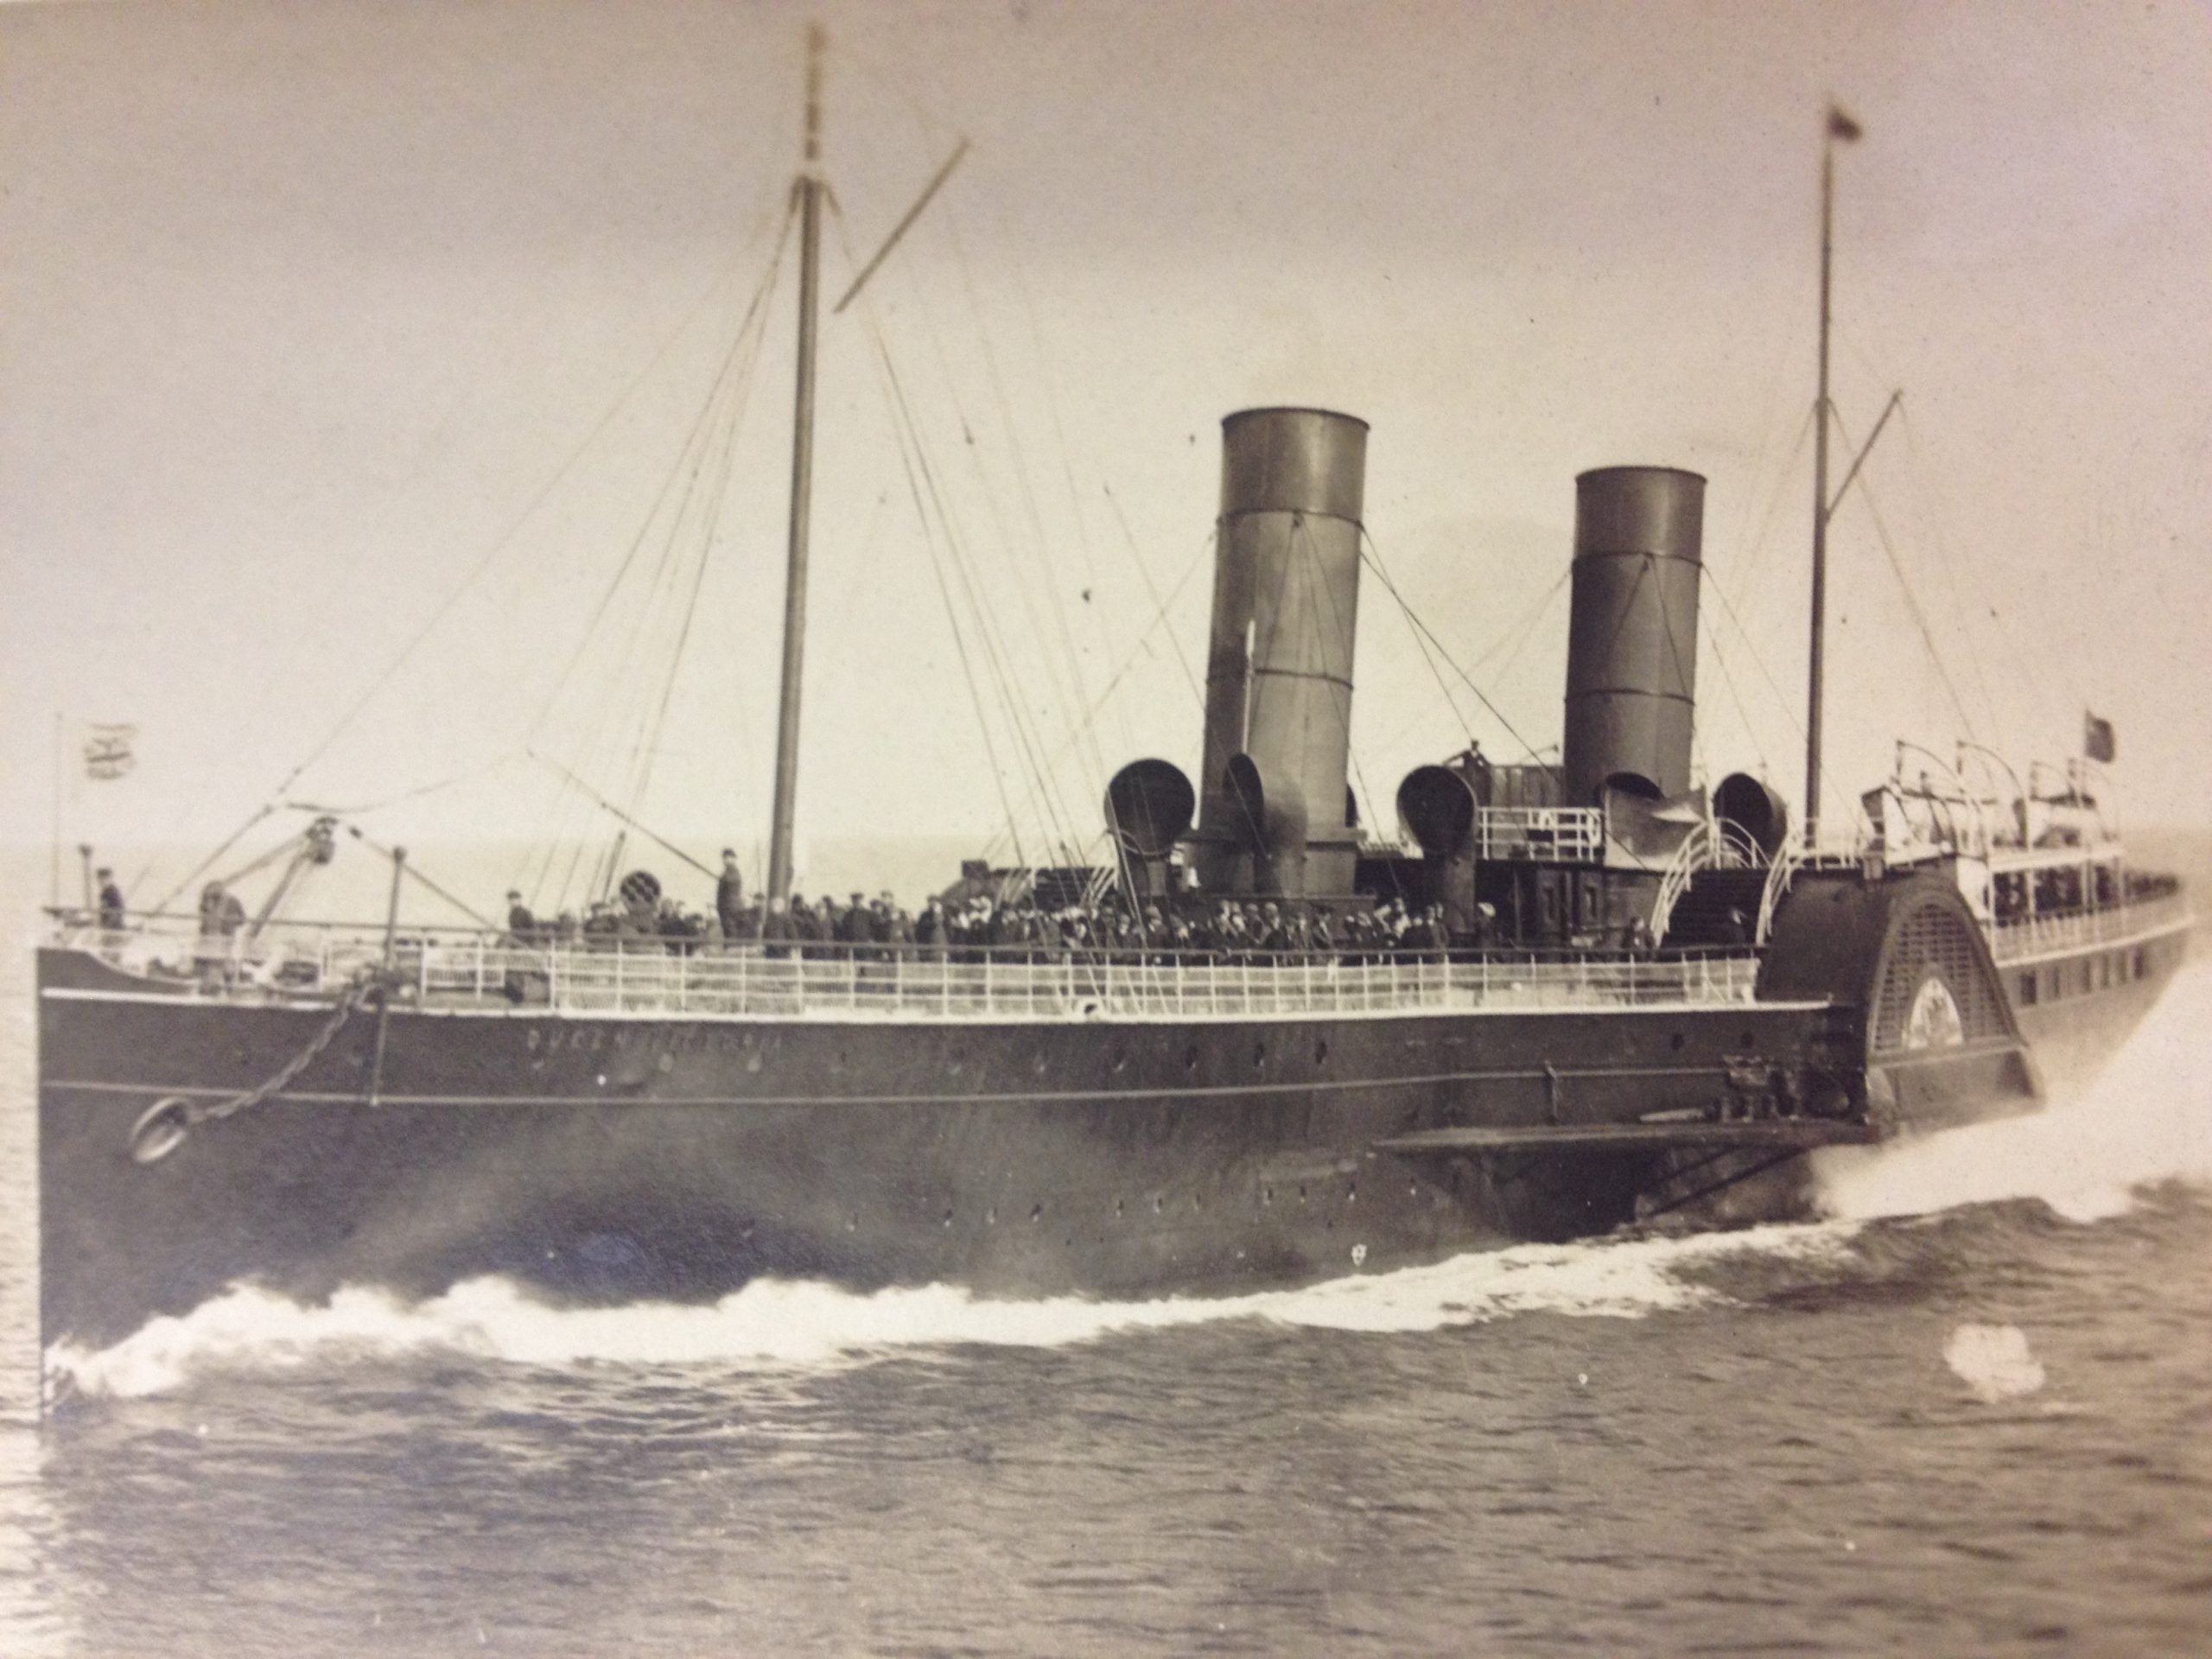 Isle_of_Man_Steam_Packet_Company_paddle_steamer_Queen_Victoria.